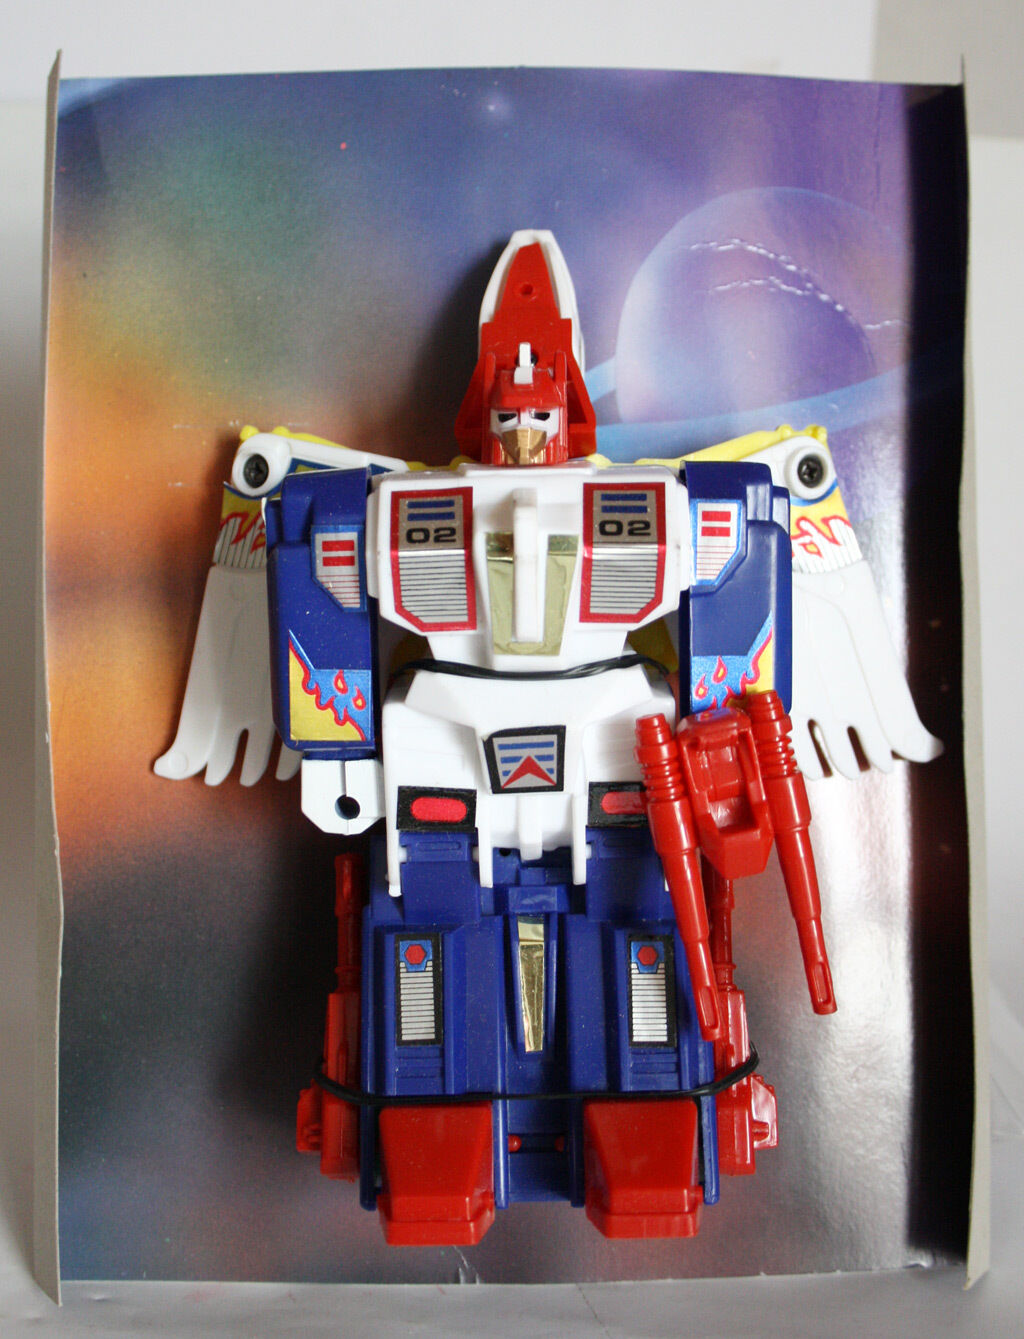 1980'S VERY RARE VINTAGE TRANSFORMABLE EAGLE WARRIOR FRICTION FRICTION FRICTION ROBOT nuovo MIB   f67d38